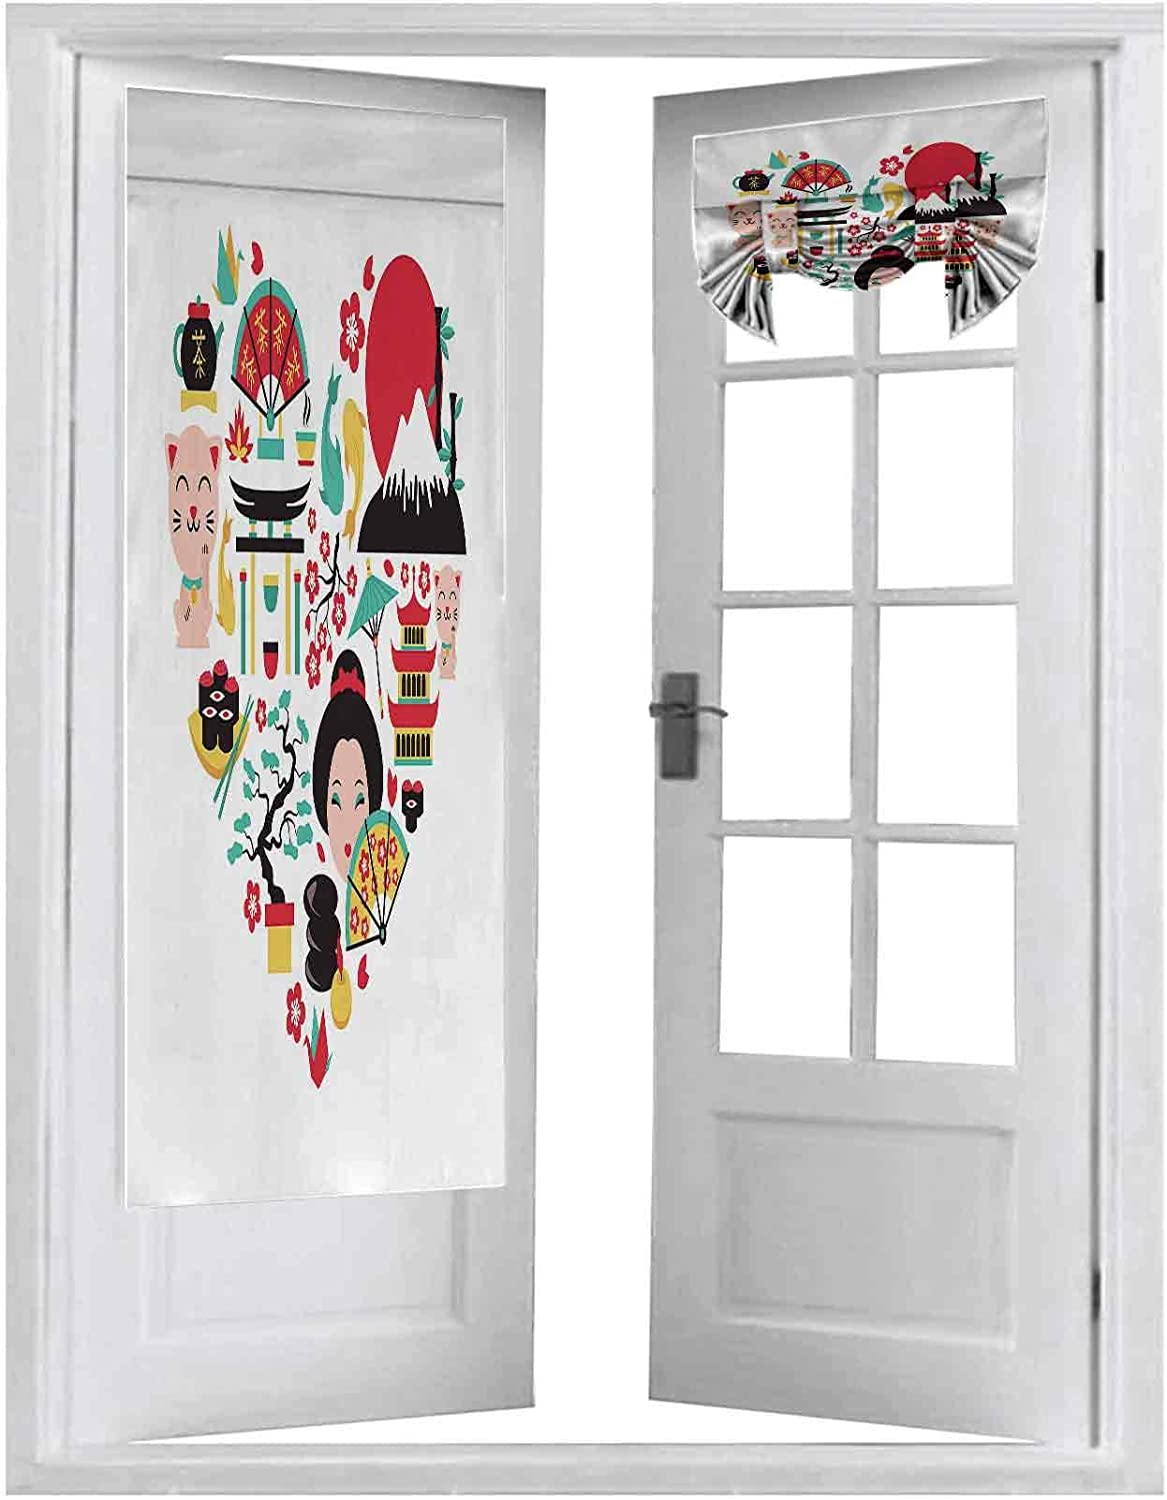 French Door Curtains, Japan Symbols Set in Heart Shape with Traditional Food and Travel Icons Vector Illustratio, 2 Panel-26